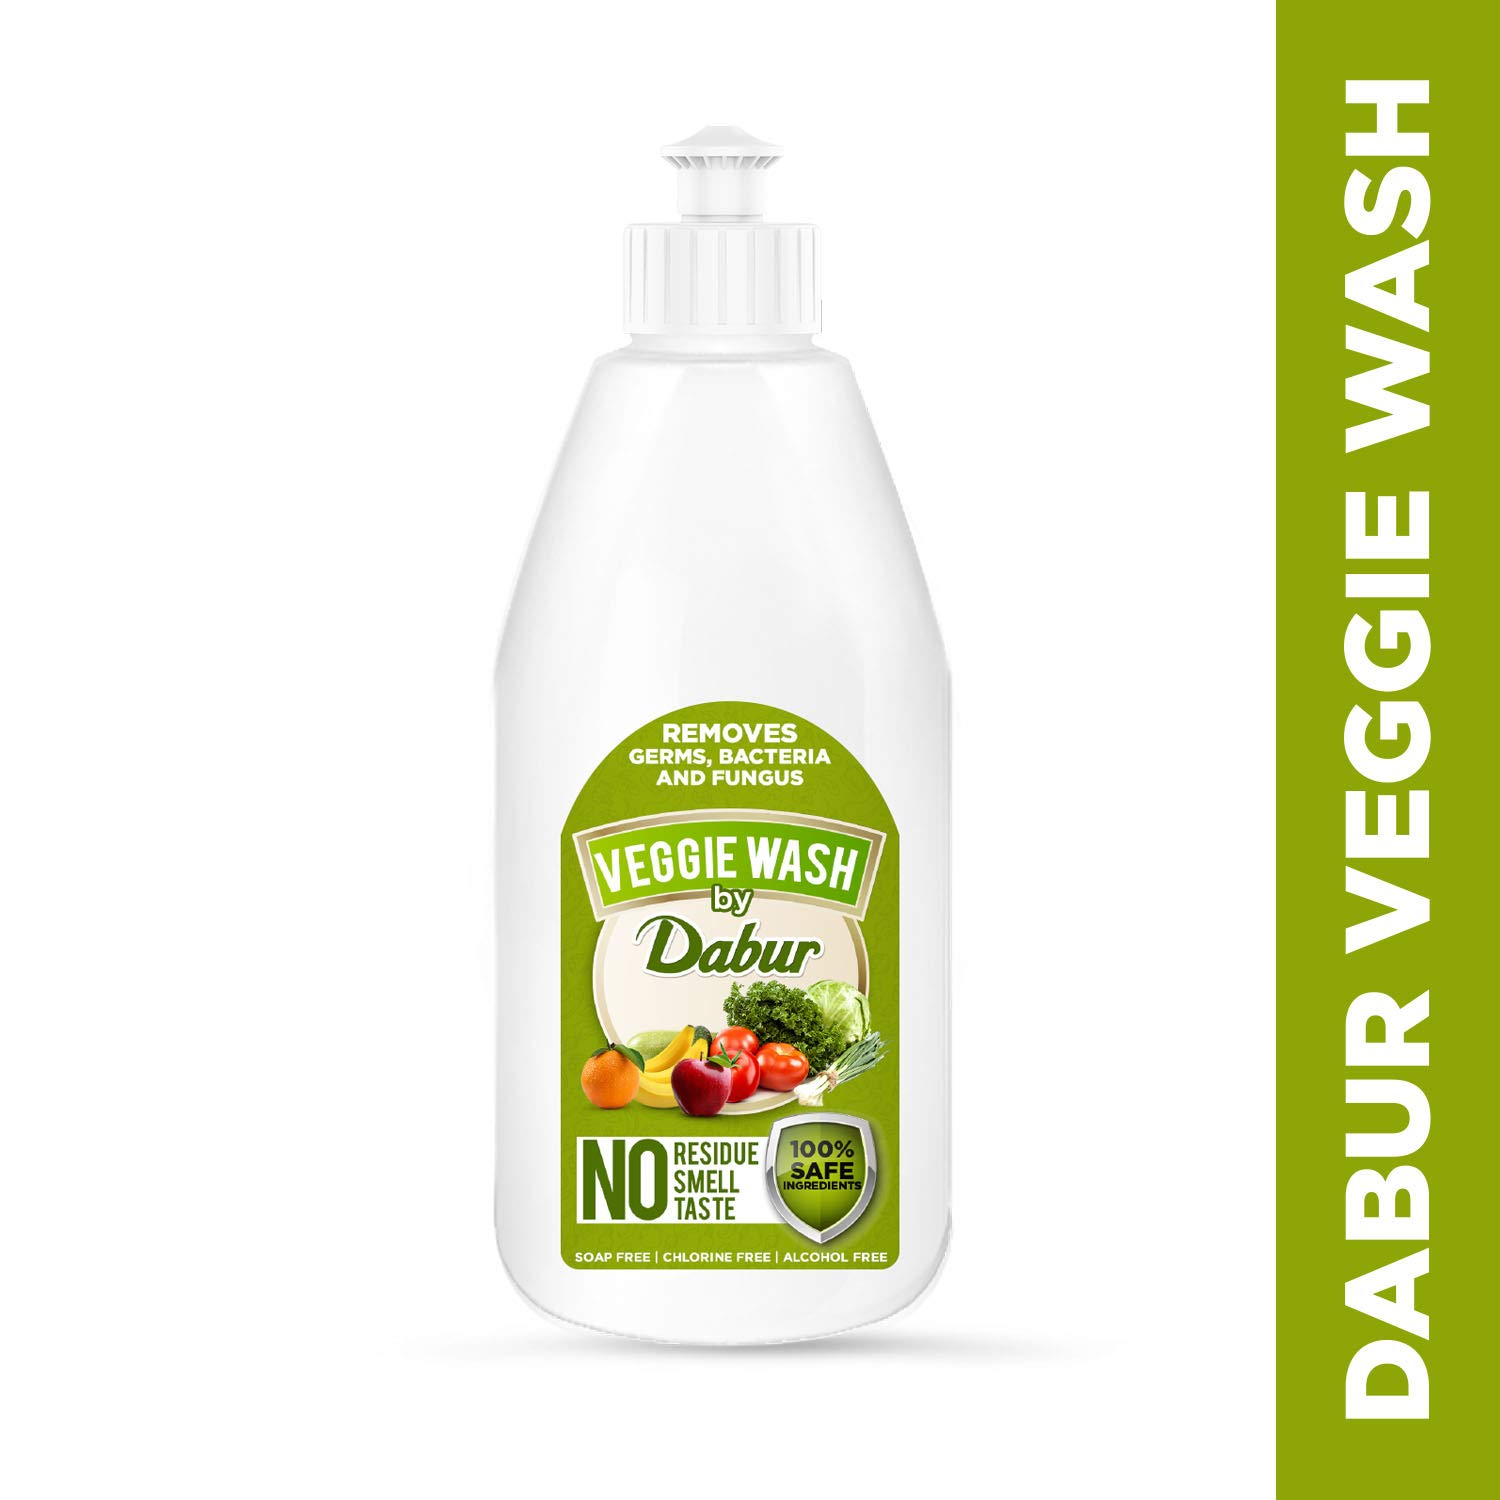 Dabur Veggie wash | Fruits and Vegetables washing Liquid | Removes Germs , Bacteria and Fungus | Contains 100% Safe Ingredients - 500 ml